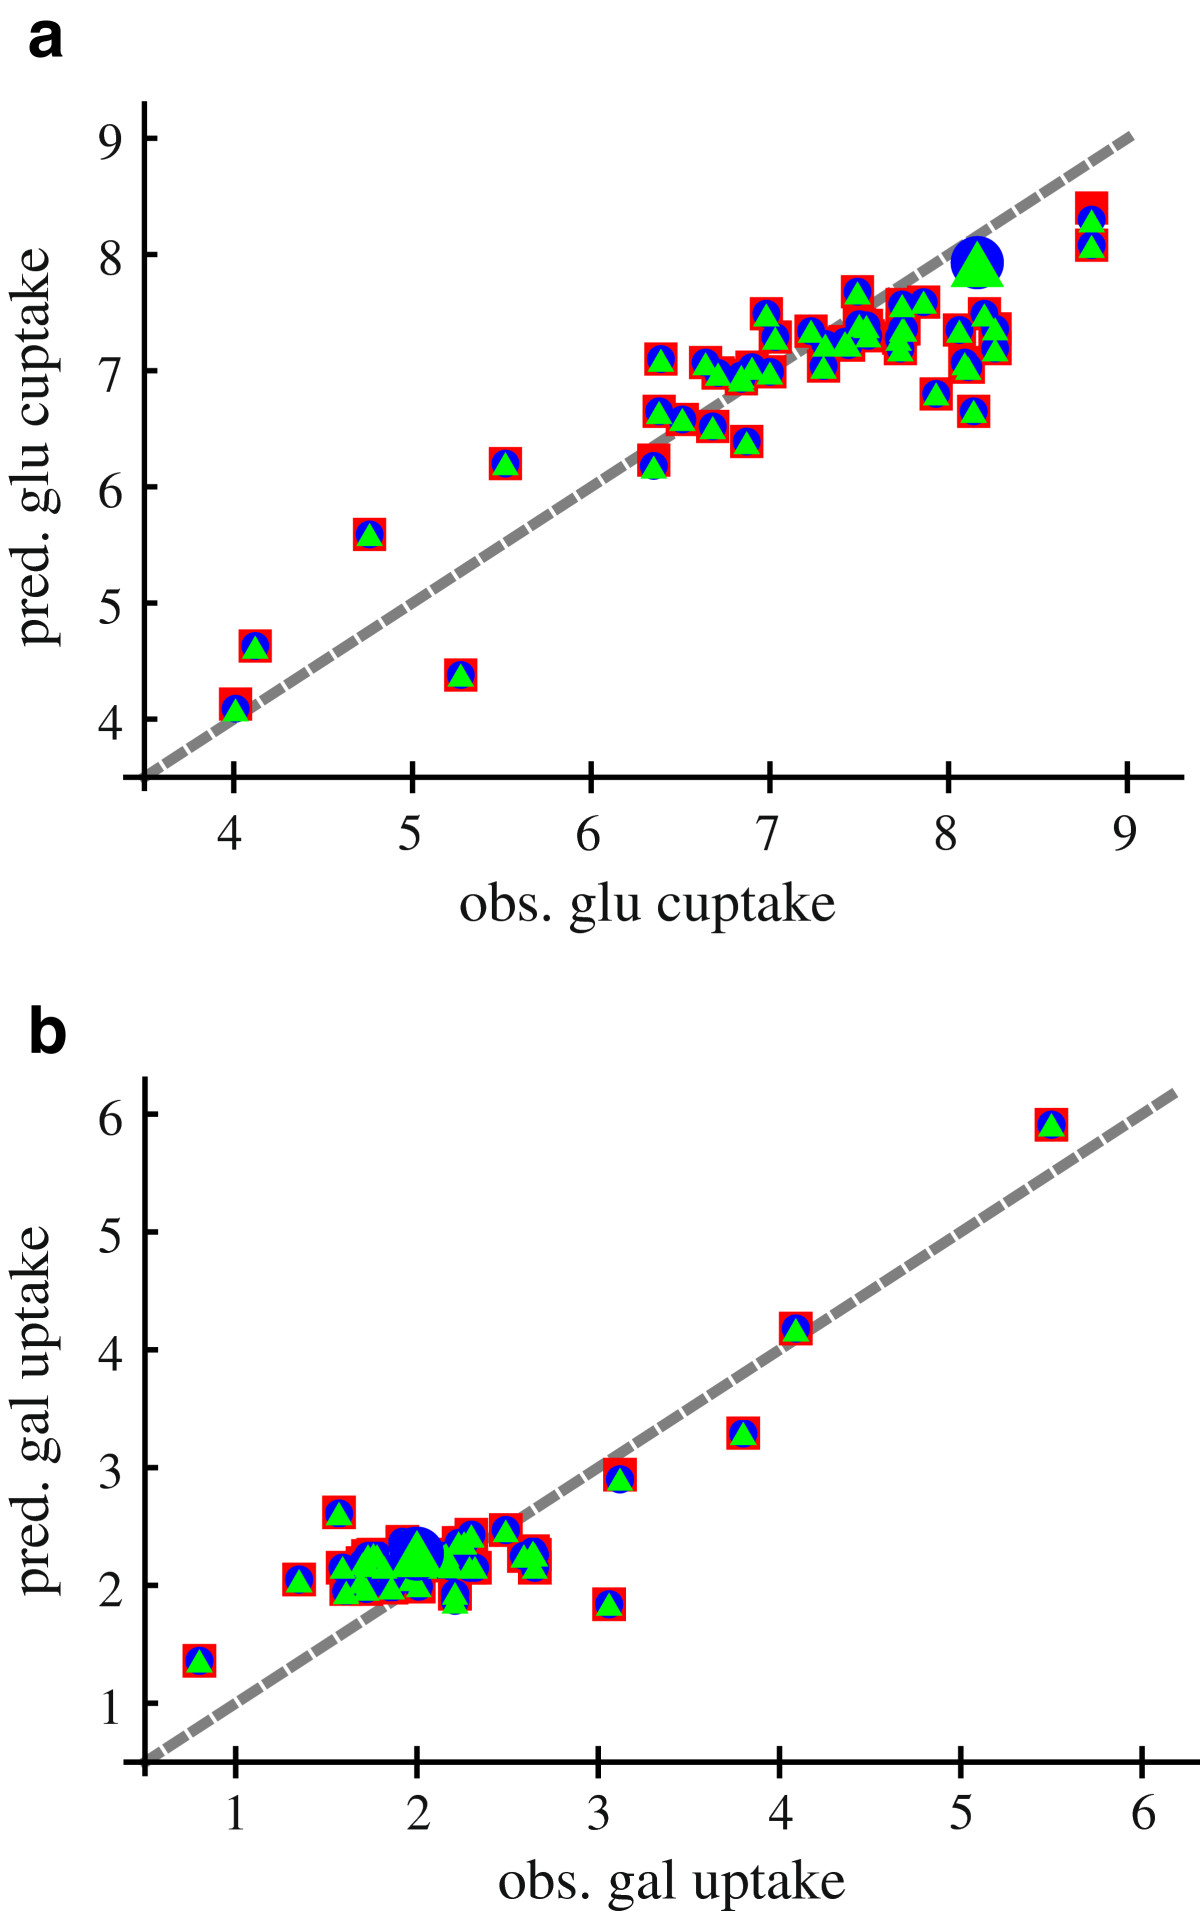 https://static-content.springer.com/image/art%3A10.1186%2F1687-4153-2012-14/MediaObjects/13637_2012_Article_19_Fig9_HTML.jpg